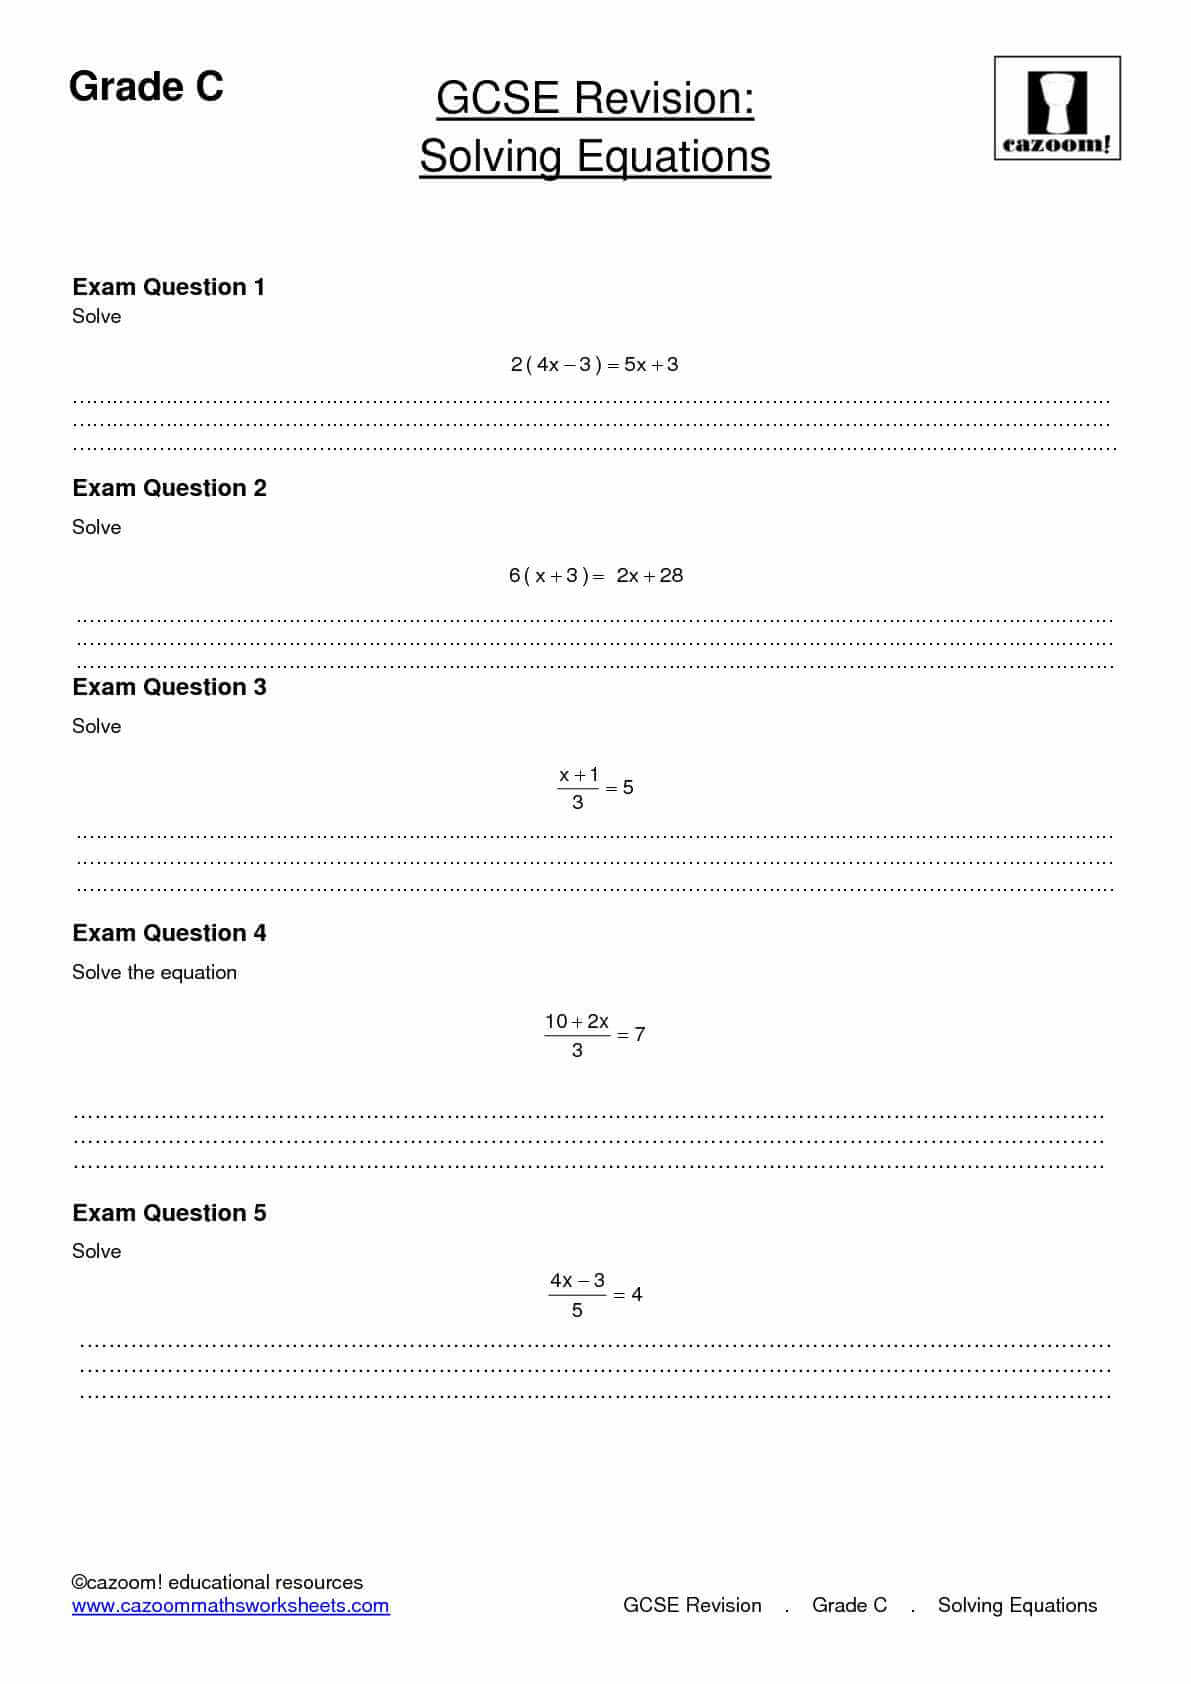 Solving Equations Revision Worksheet